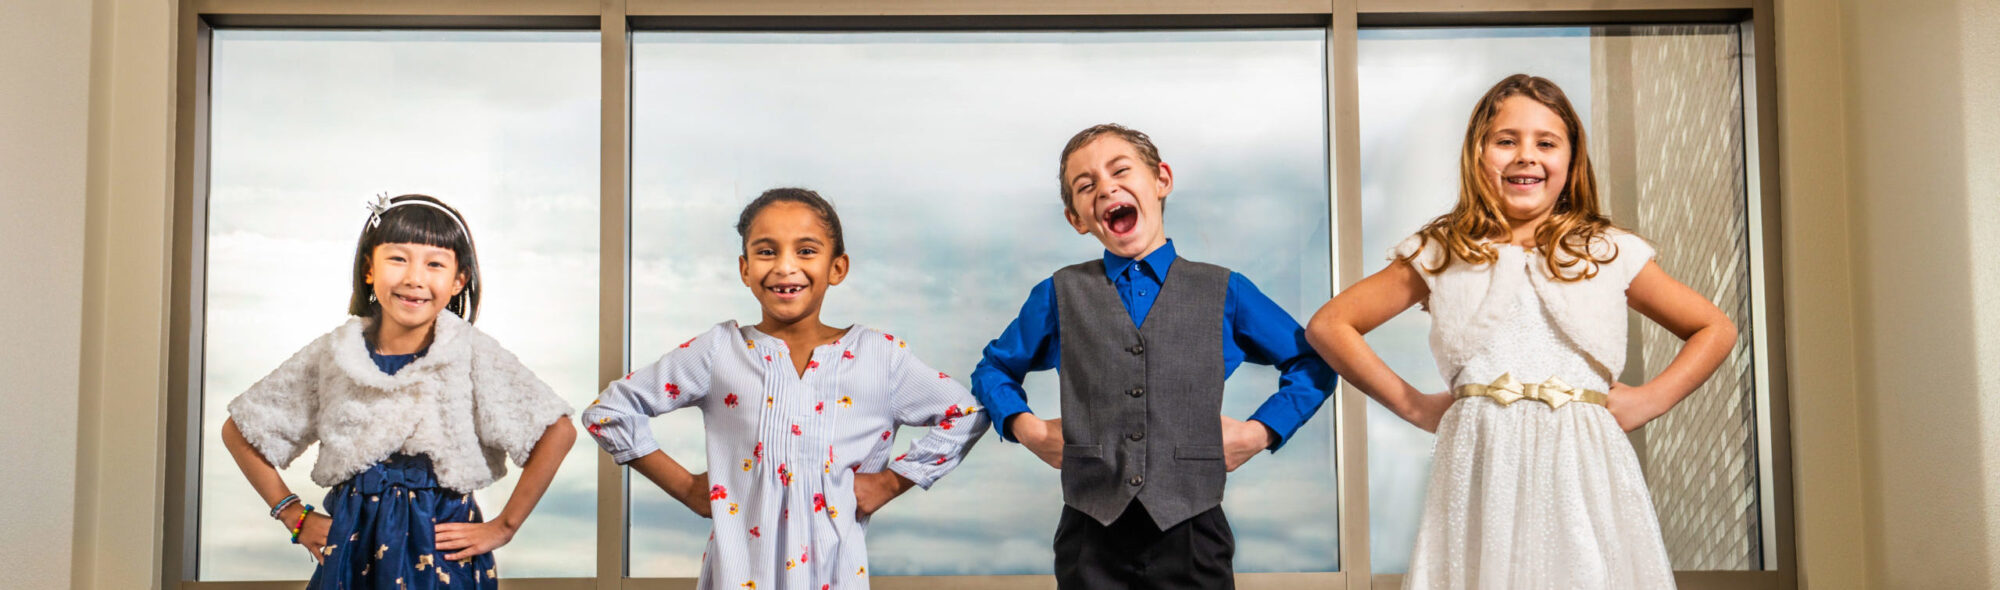 four kids standing in front of large windows standing tall and laughing.